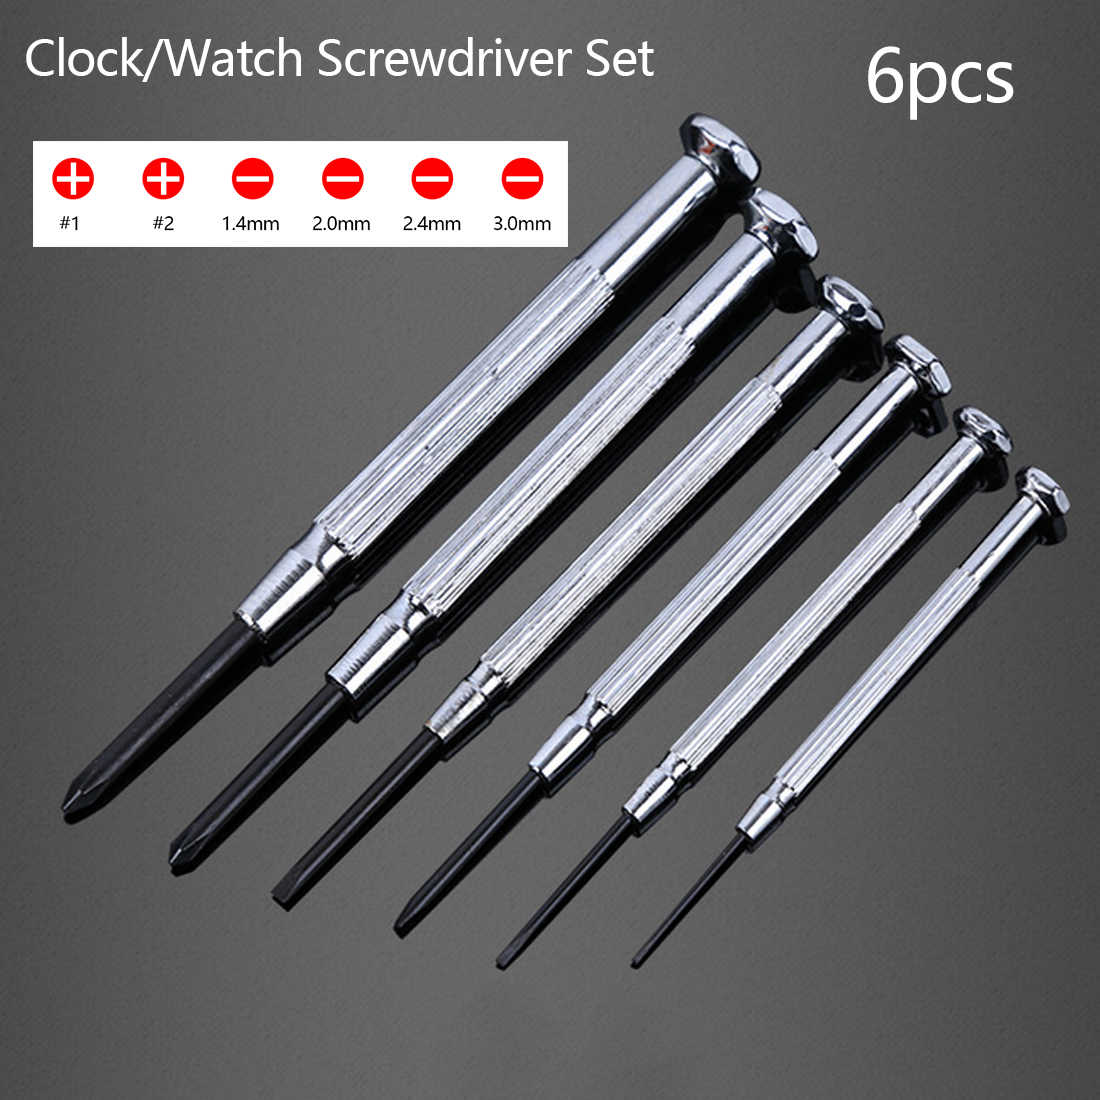 Top 6pcs Precision Multifunction Small Screwdriver Set with Slotted Phillips Bits for Watch Glasses Screw driver Repair Tools